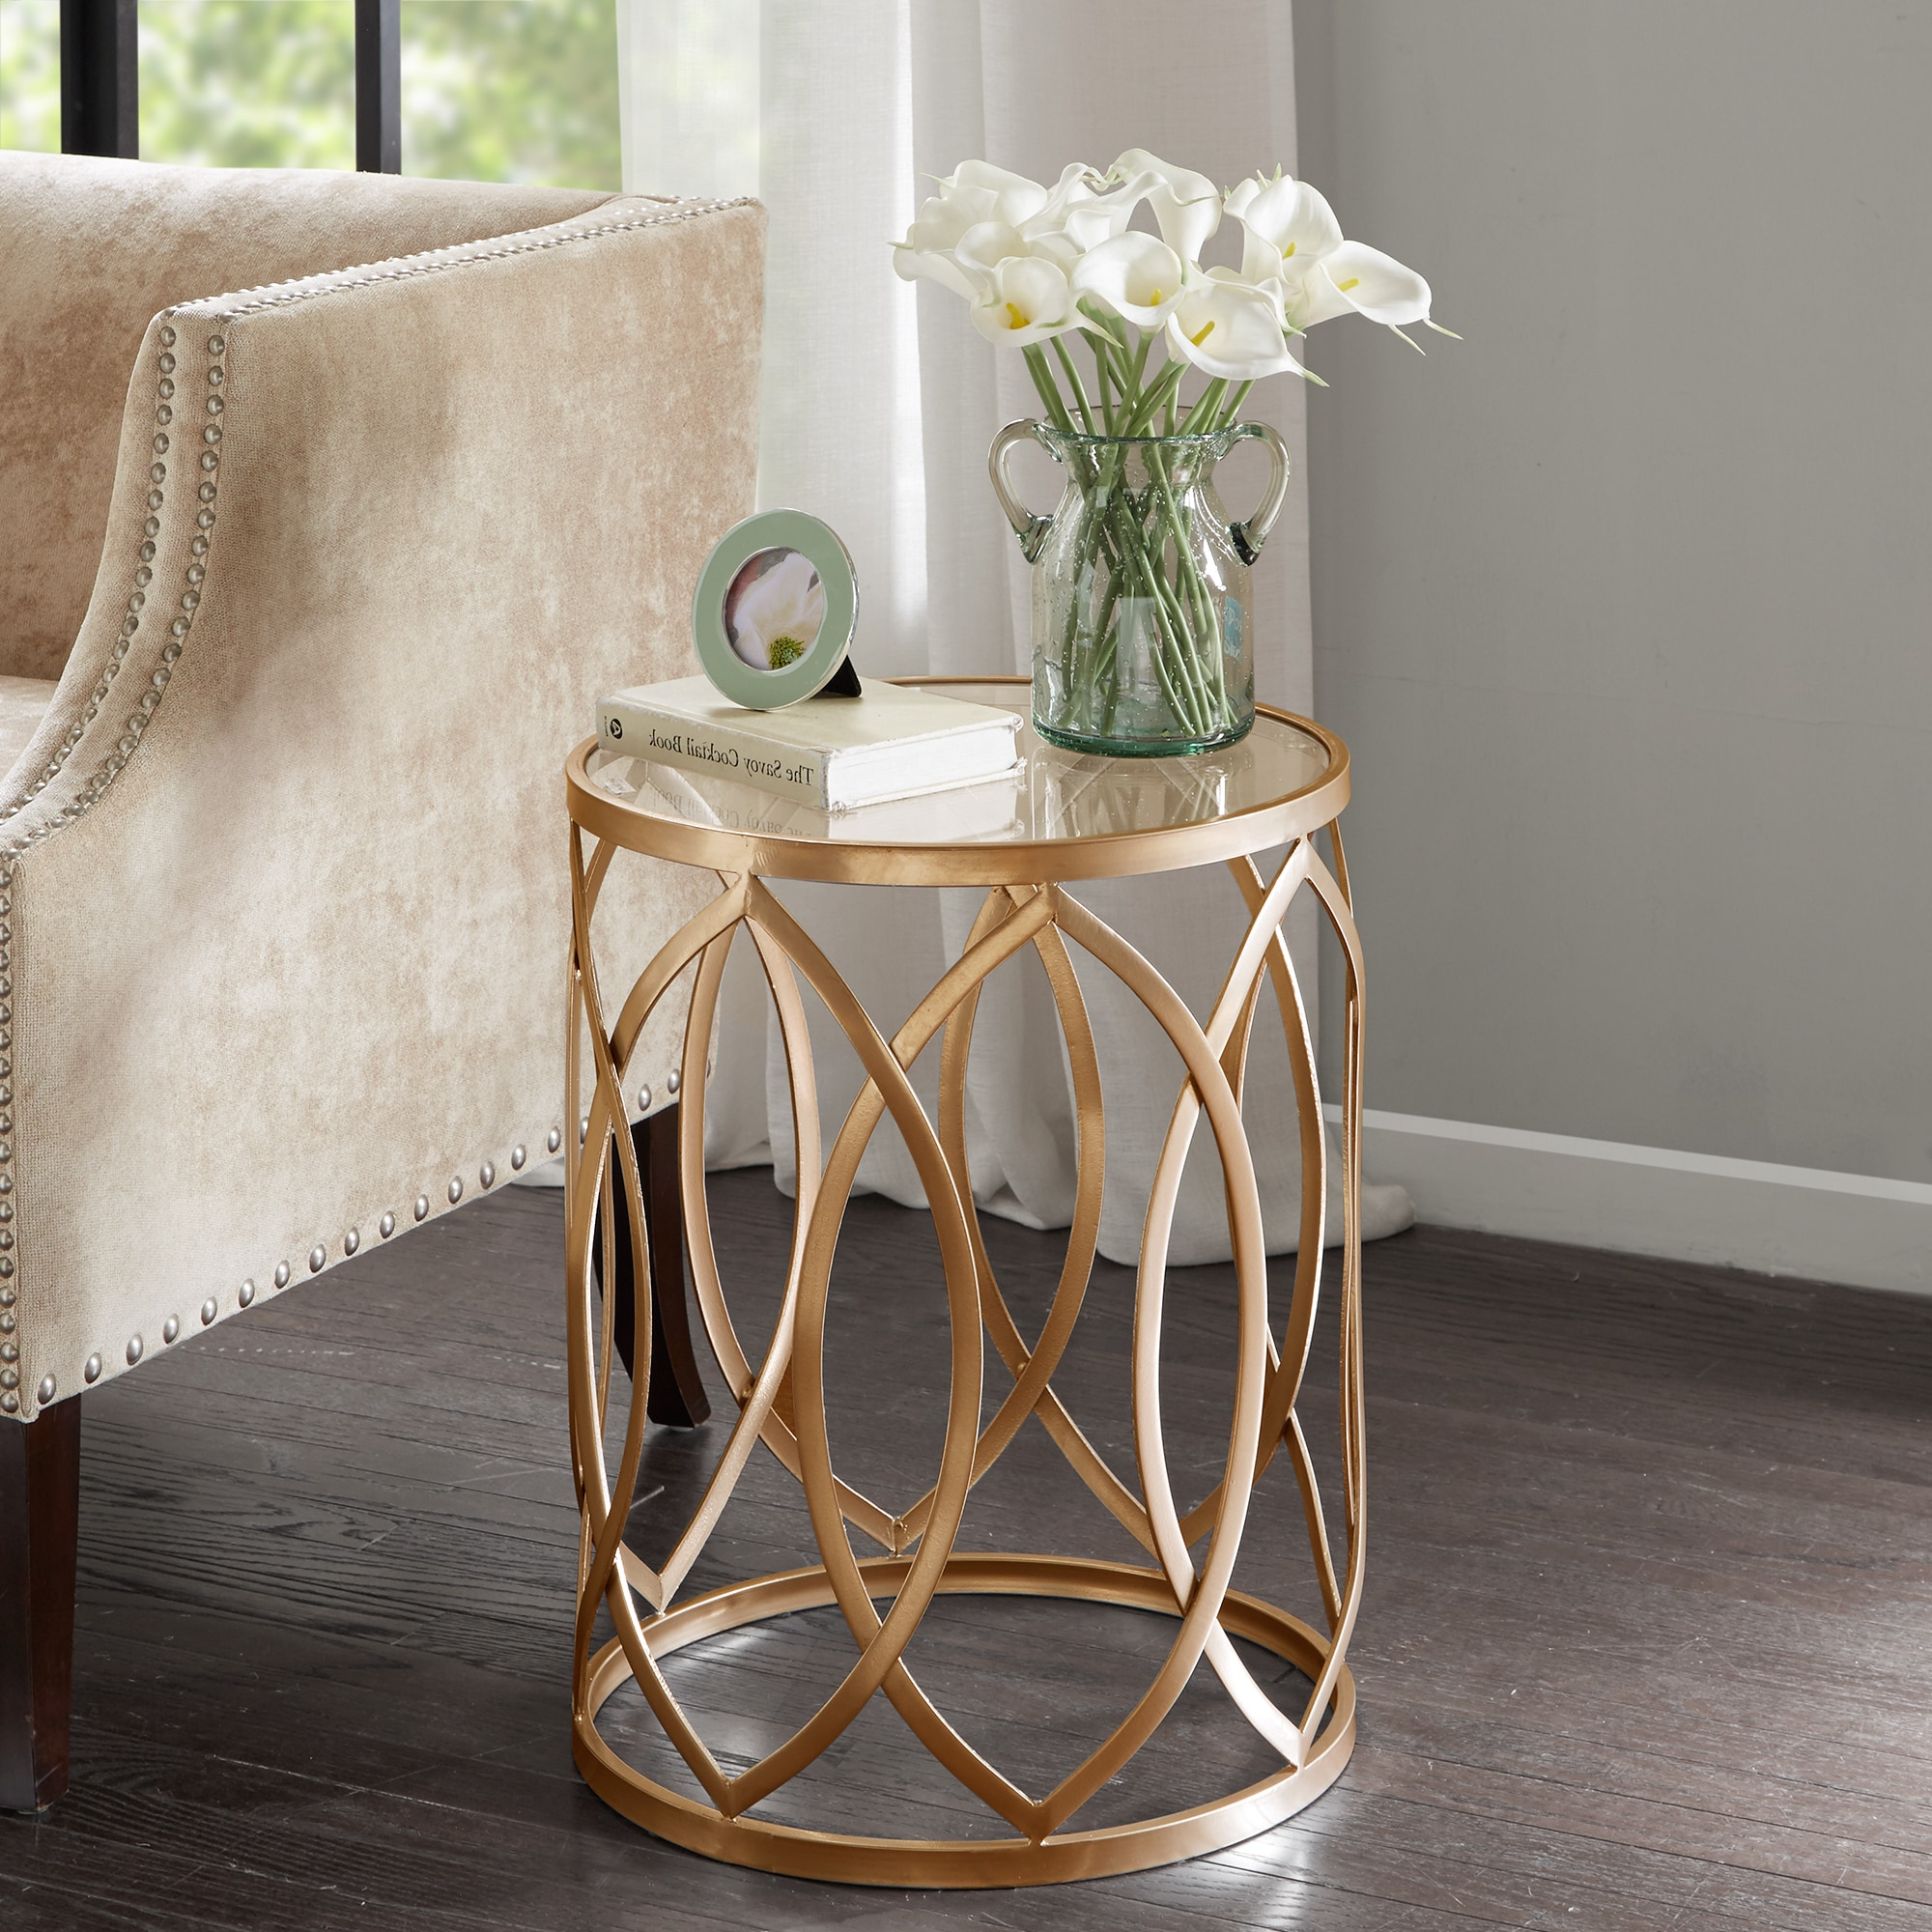 Silver Orchid Grant Gold/ Glass Metal Eyelet Accent Table In Popular Silver Orchid Grant Glam Nesting Cocktail Tables (View 18 of 20)